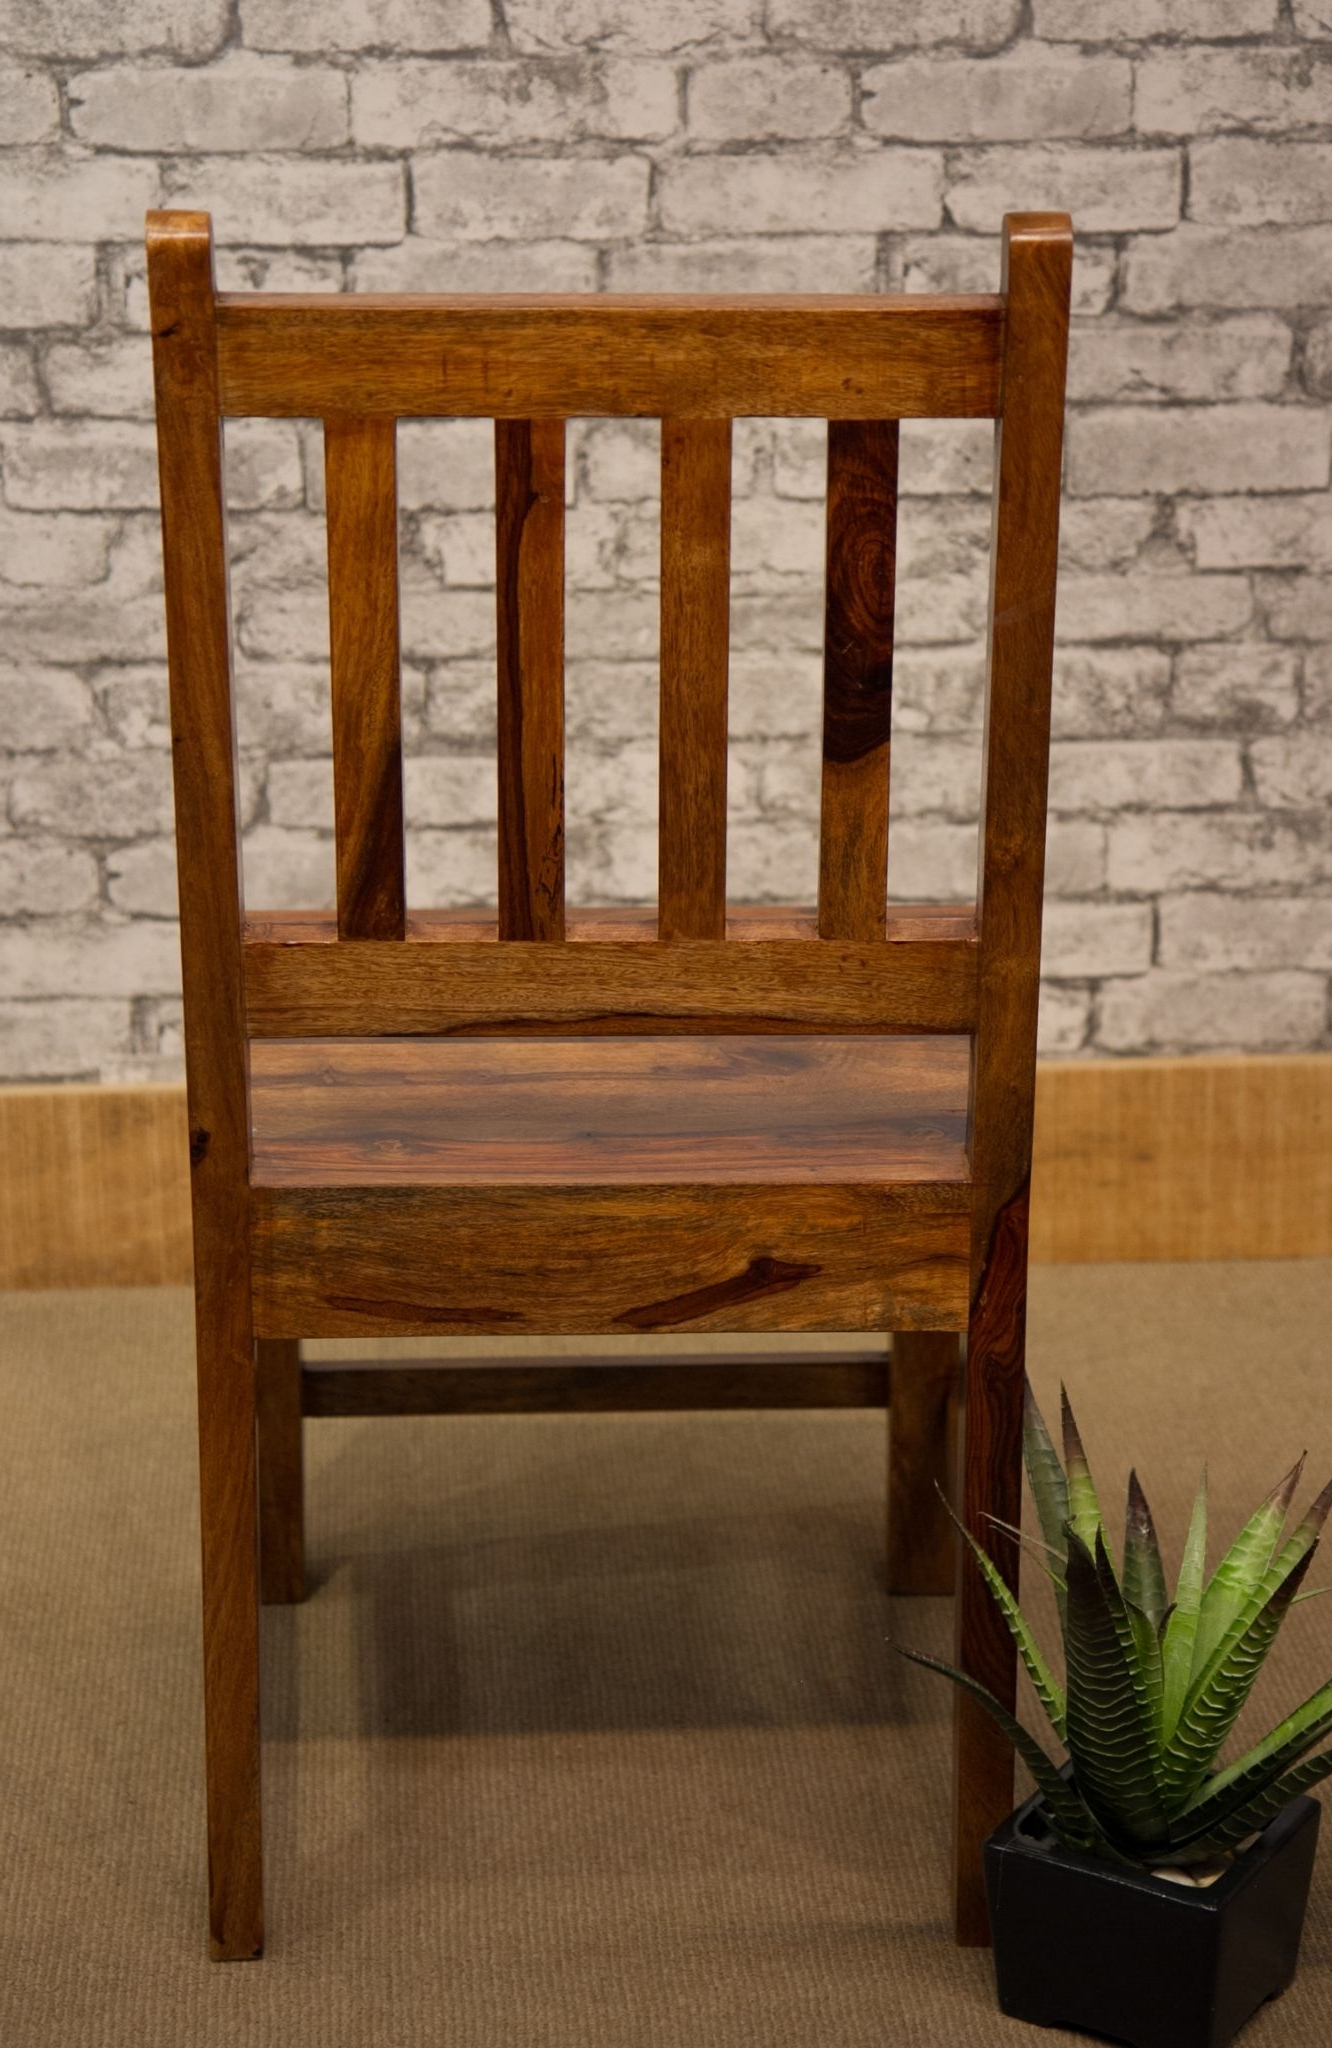 Ibf 049 Low Slat Back Sheesham Dining Chair Inside Most Recently Released Sheesham Dining Chairs (Gallery 19 of 25)